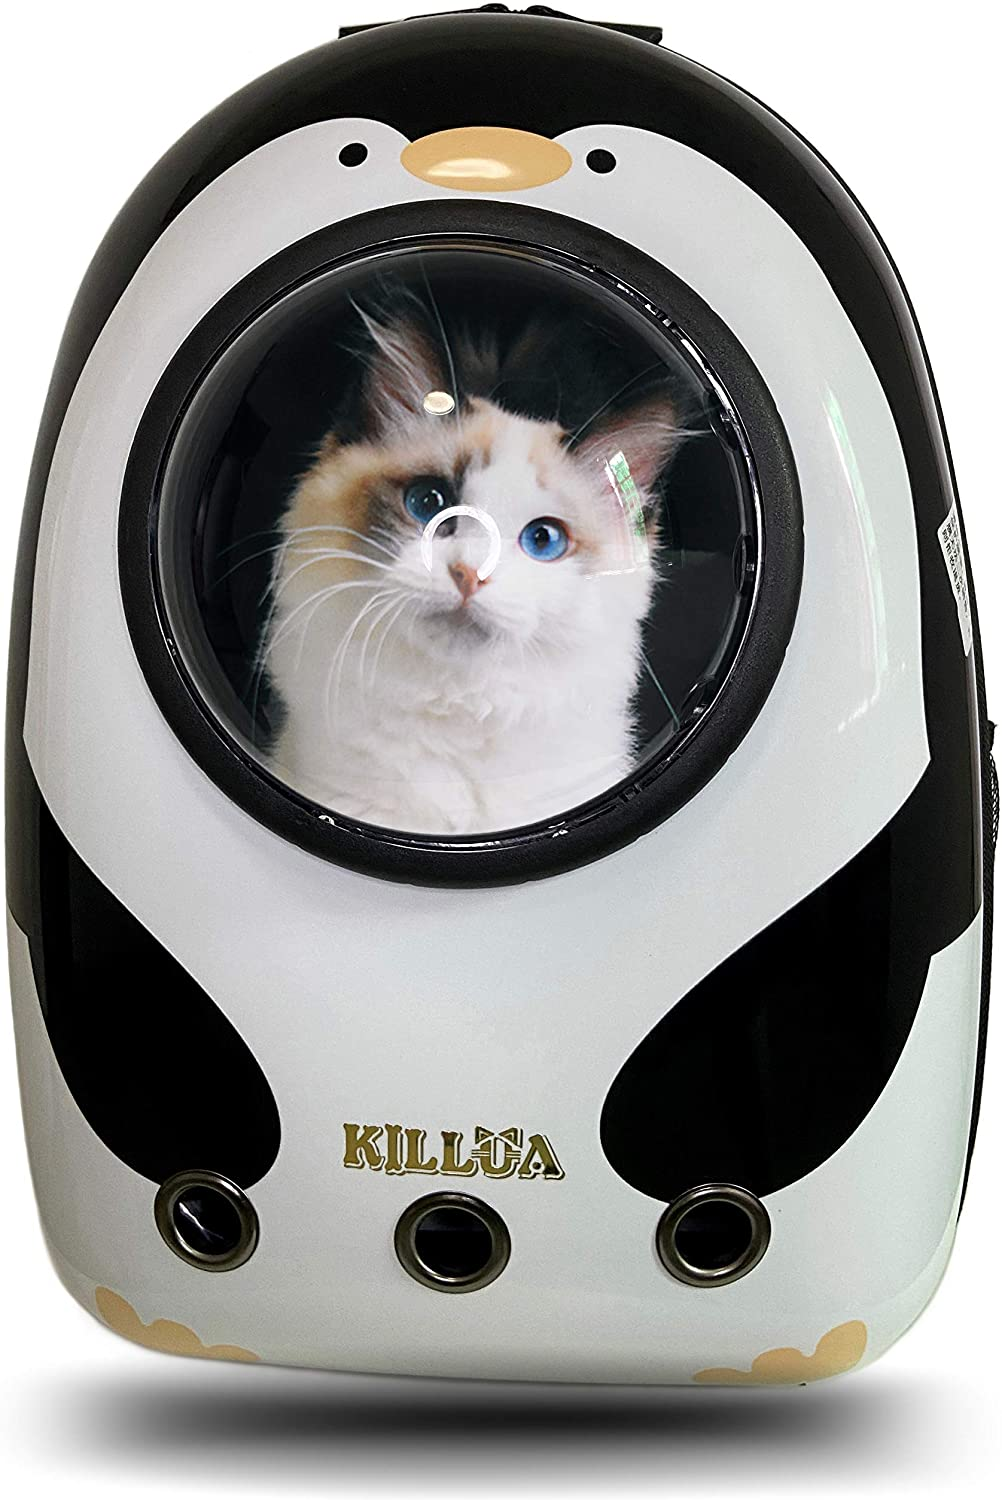 KILLUA Tulsa Mall Now free shipping Backpacks of Pets Pet Travel Space Carrier Waterproof Ca